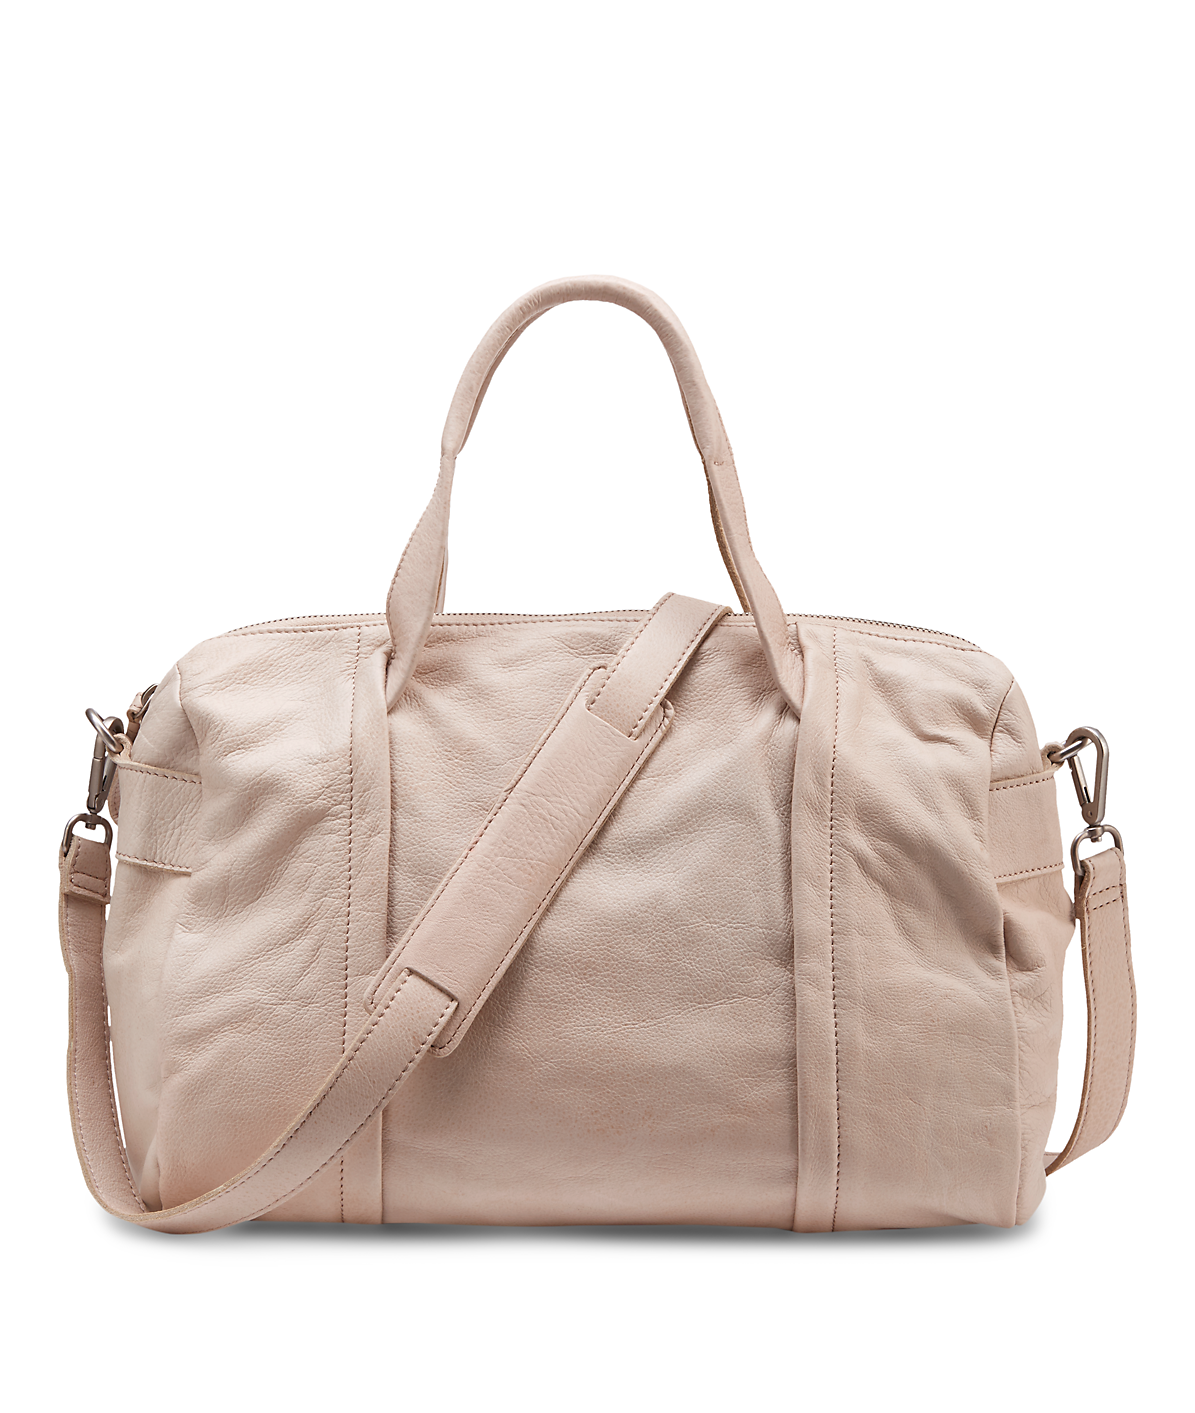 Evelyn handbag from liebeskind